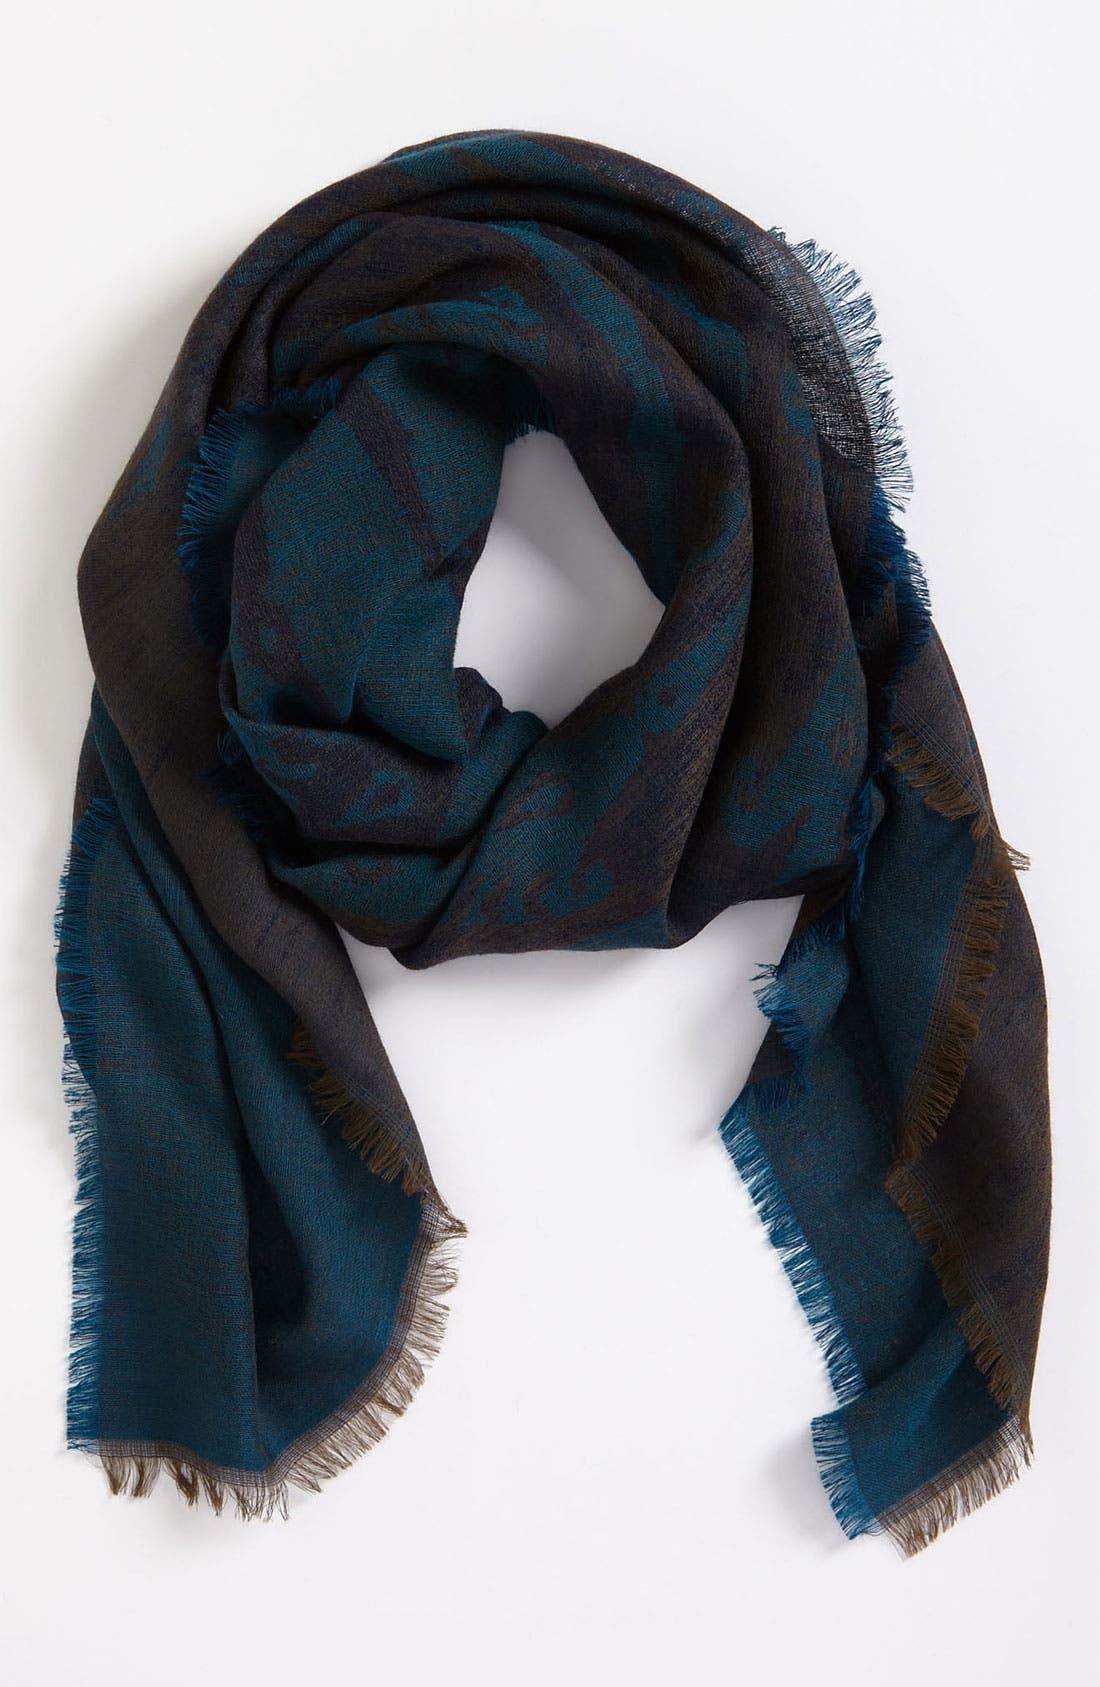 Alternate Image 1 Selected - Etro Jacquard Wool Scarf